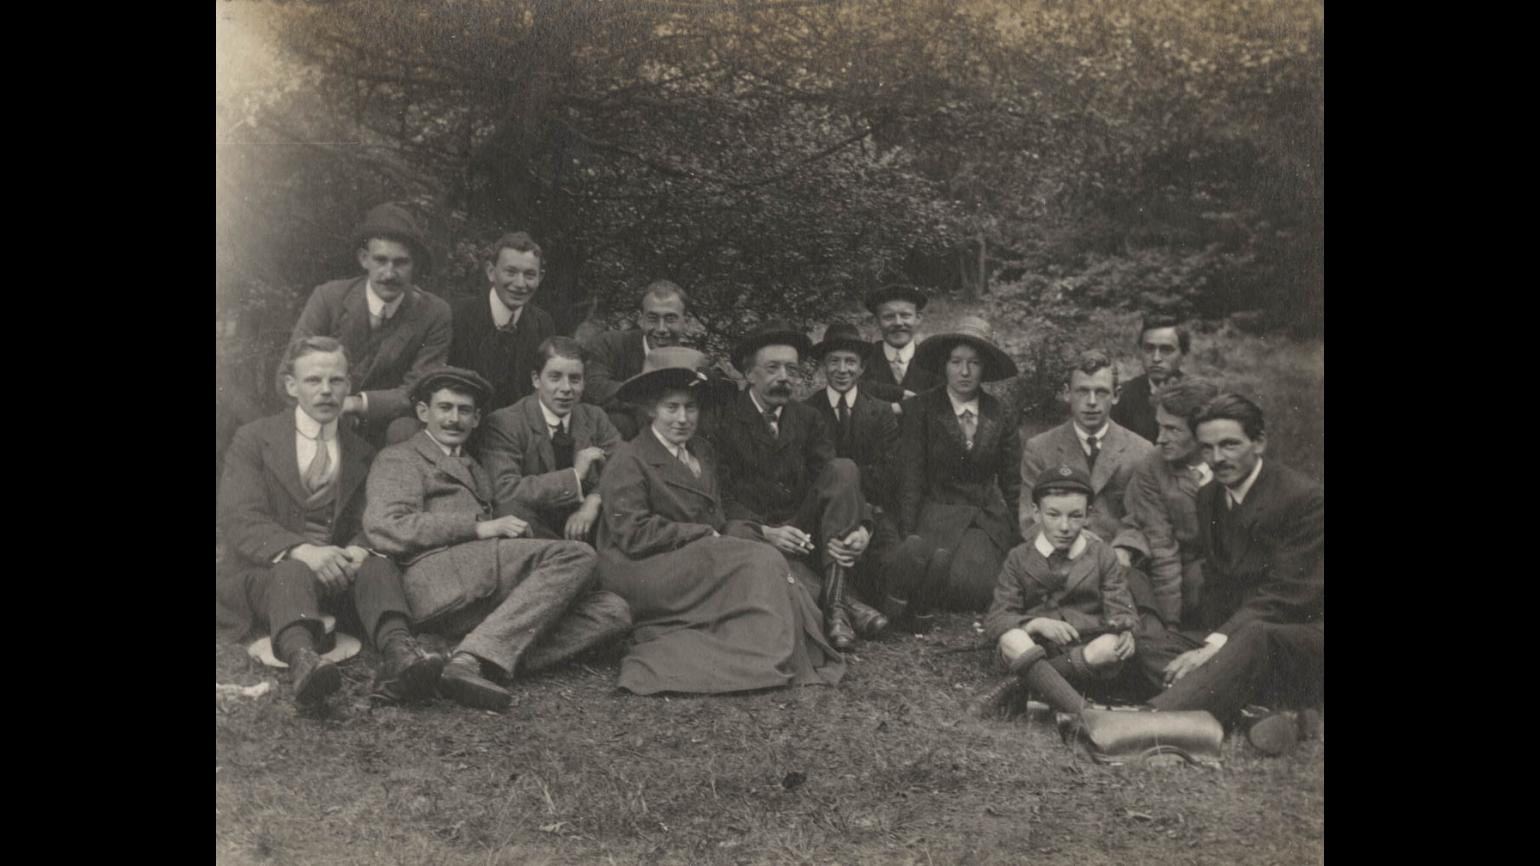 An early Kew fungus foray in Epping Forest with Kew botanists George Massee and Elsie Wakefield, c.1910